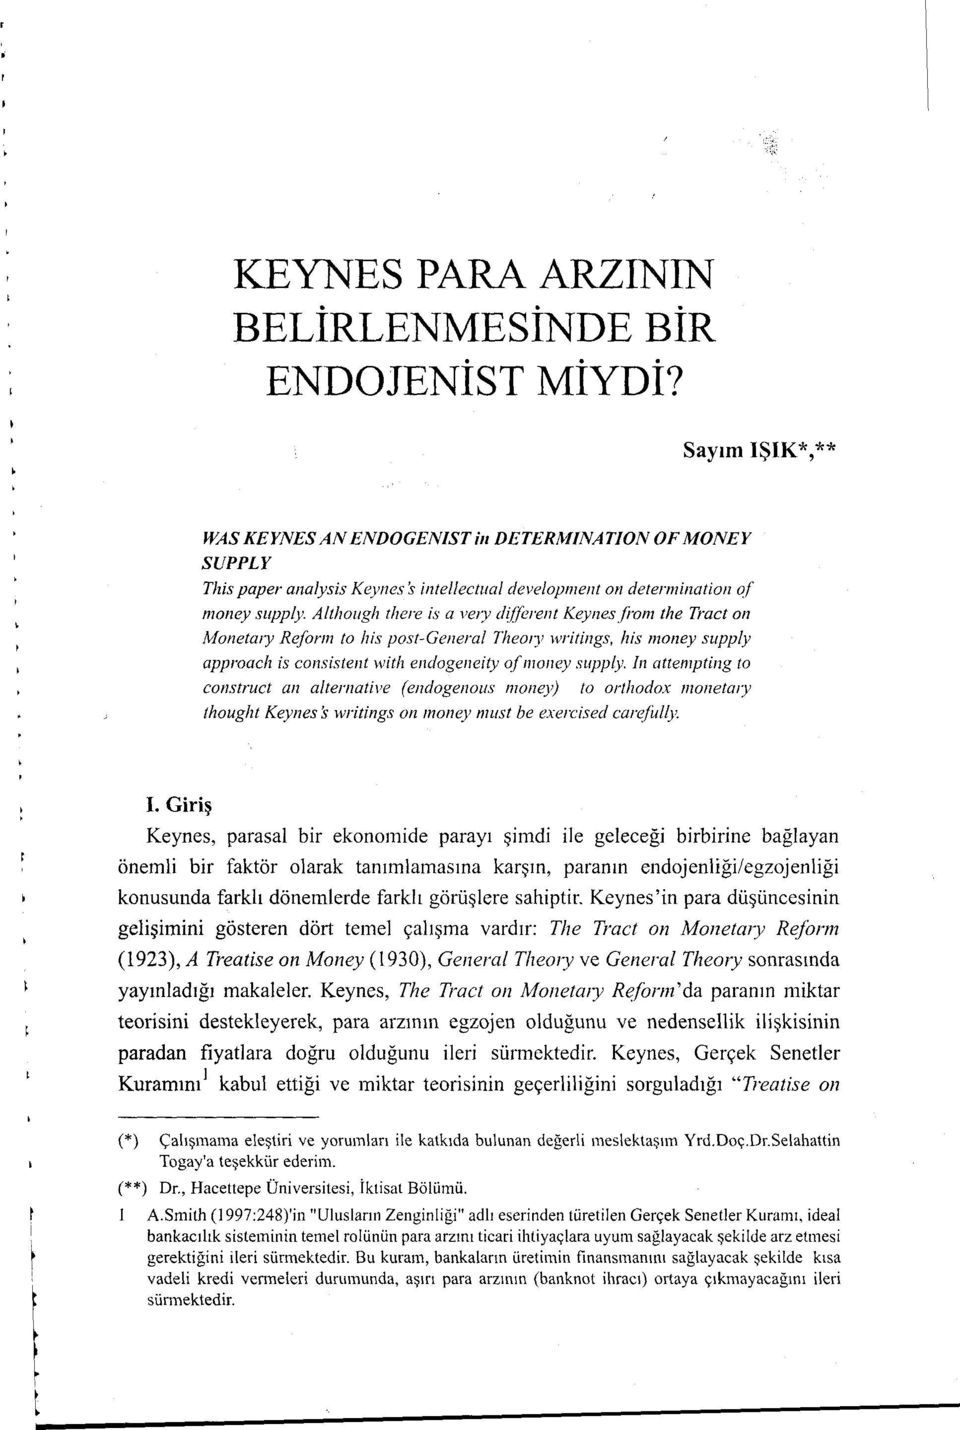 Altlıough ılıereisa ve1y different Keynesfi onı the Tract on Monetmy Reform to his post-general TheOI)' writings, his money supply approach is cansislenf witlı endogeneity ofmoney supply.